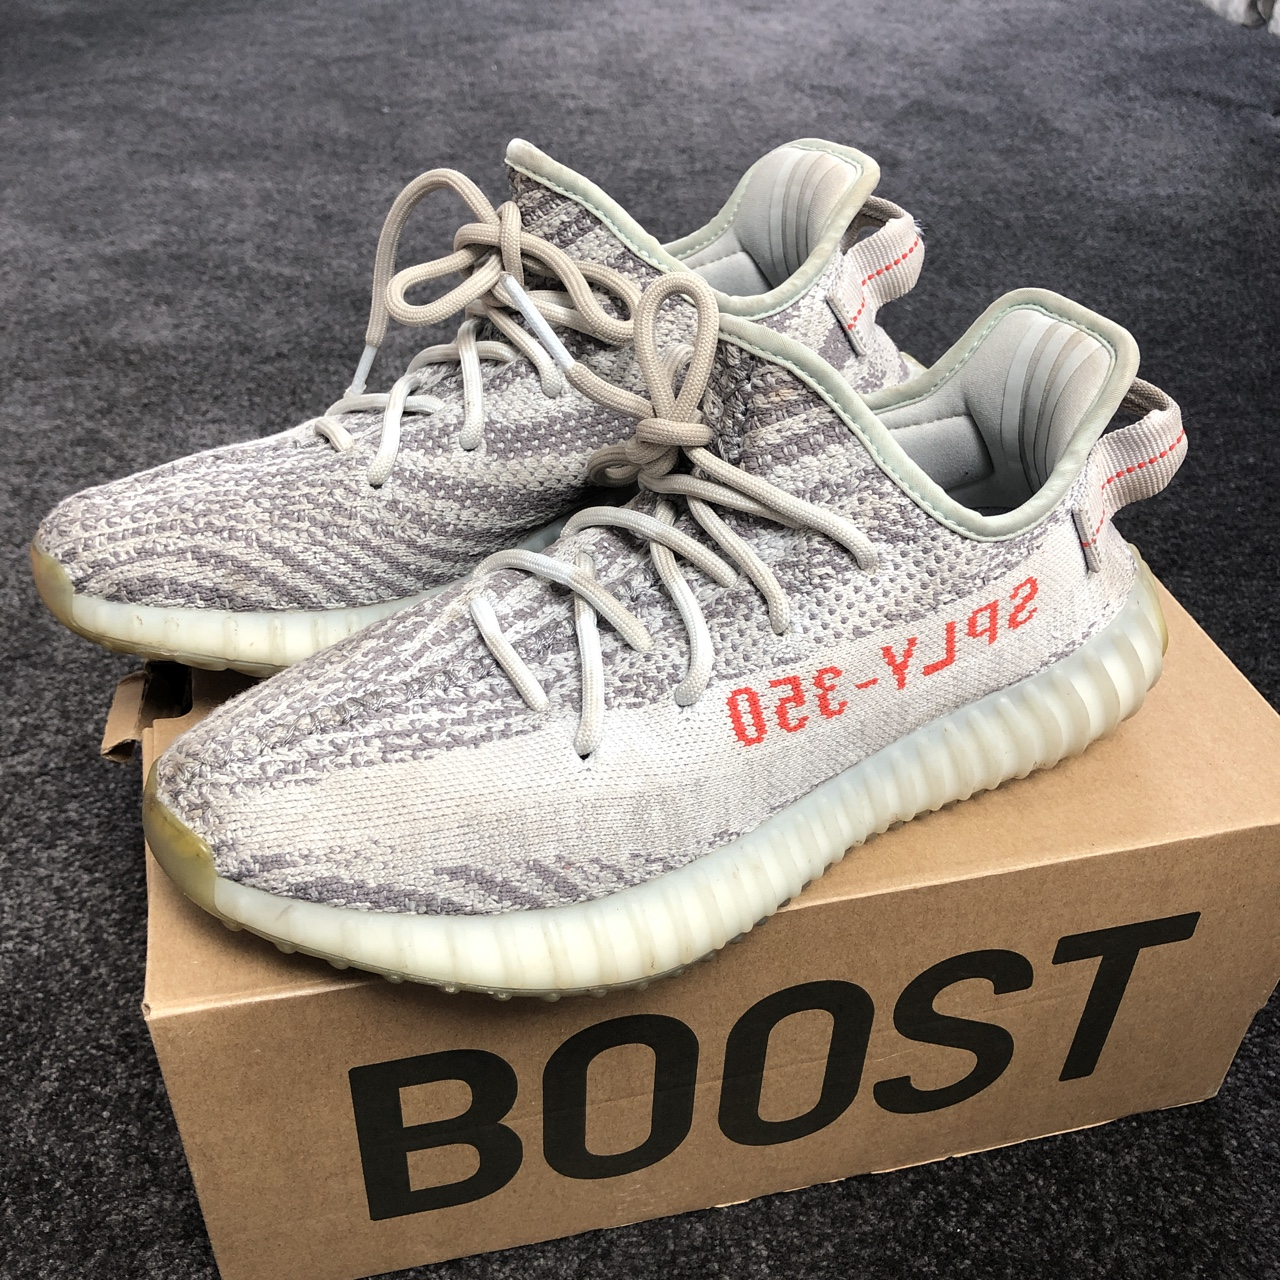 Yeezy 350 blue tint ❄️ Just need to